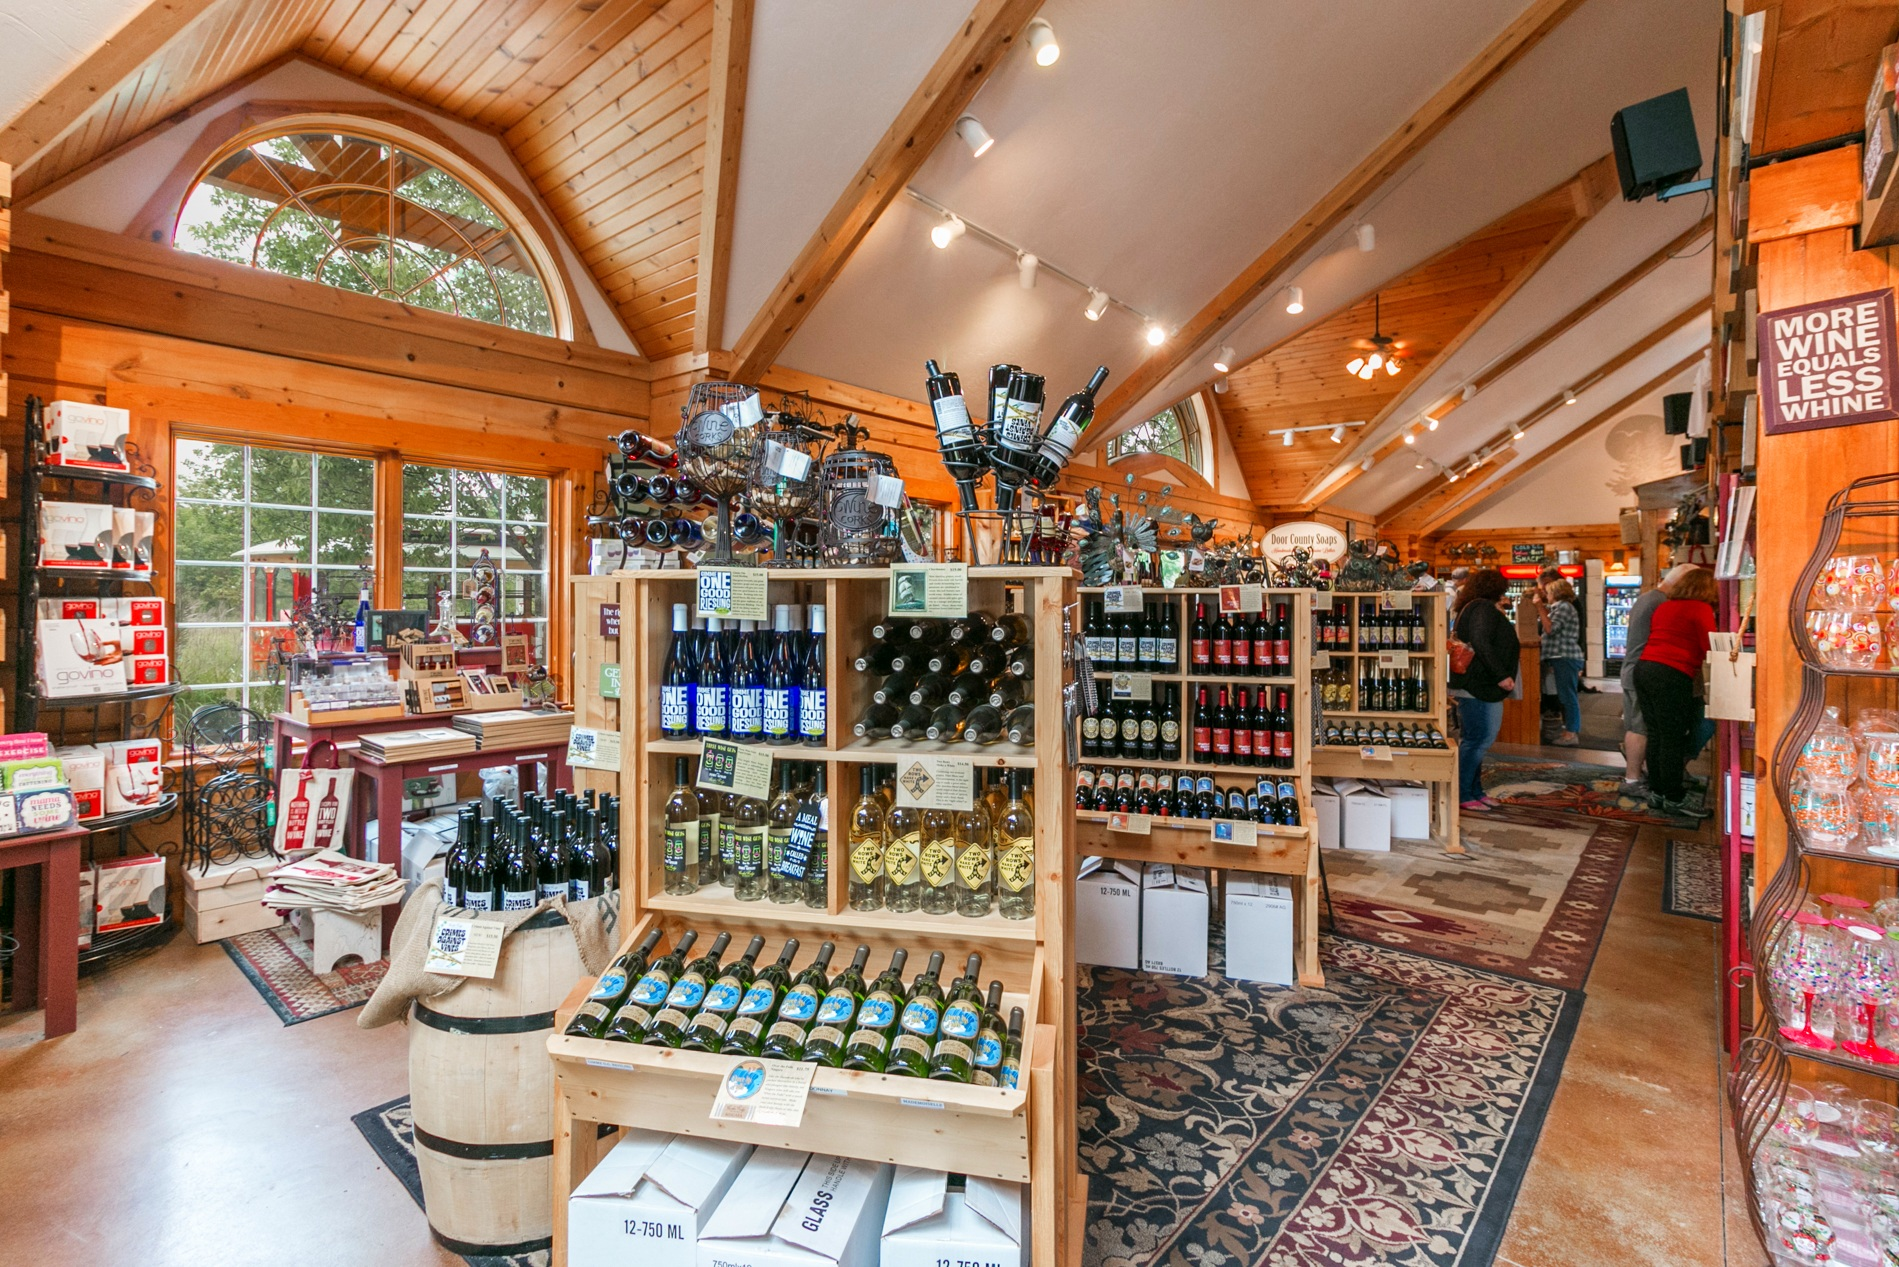 Check out our delicious wines and merchandise!  Our ever-growing portfolio of wonderful wines that range from dry, oak-barreled aged to sweet and fruity, offers something for every palate.